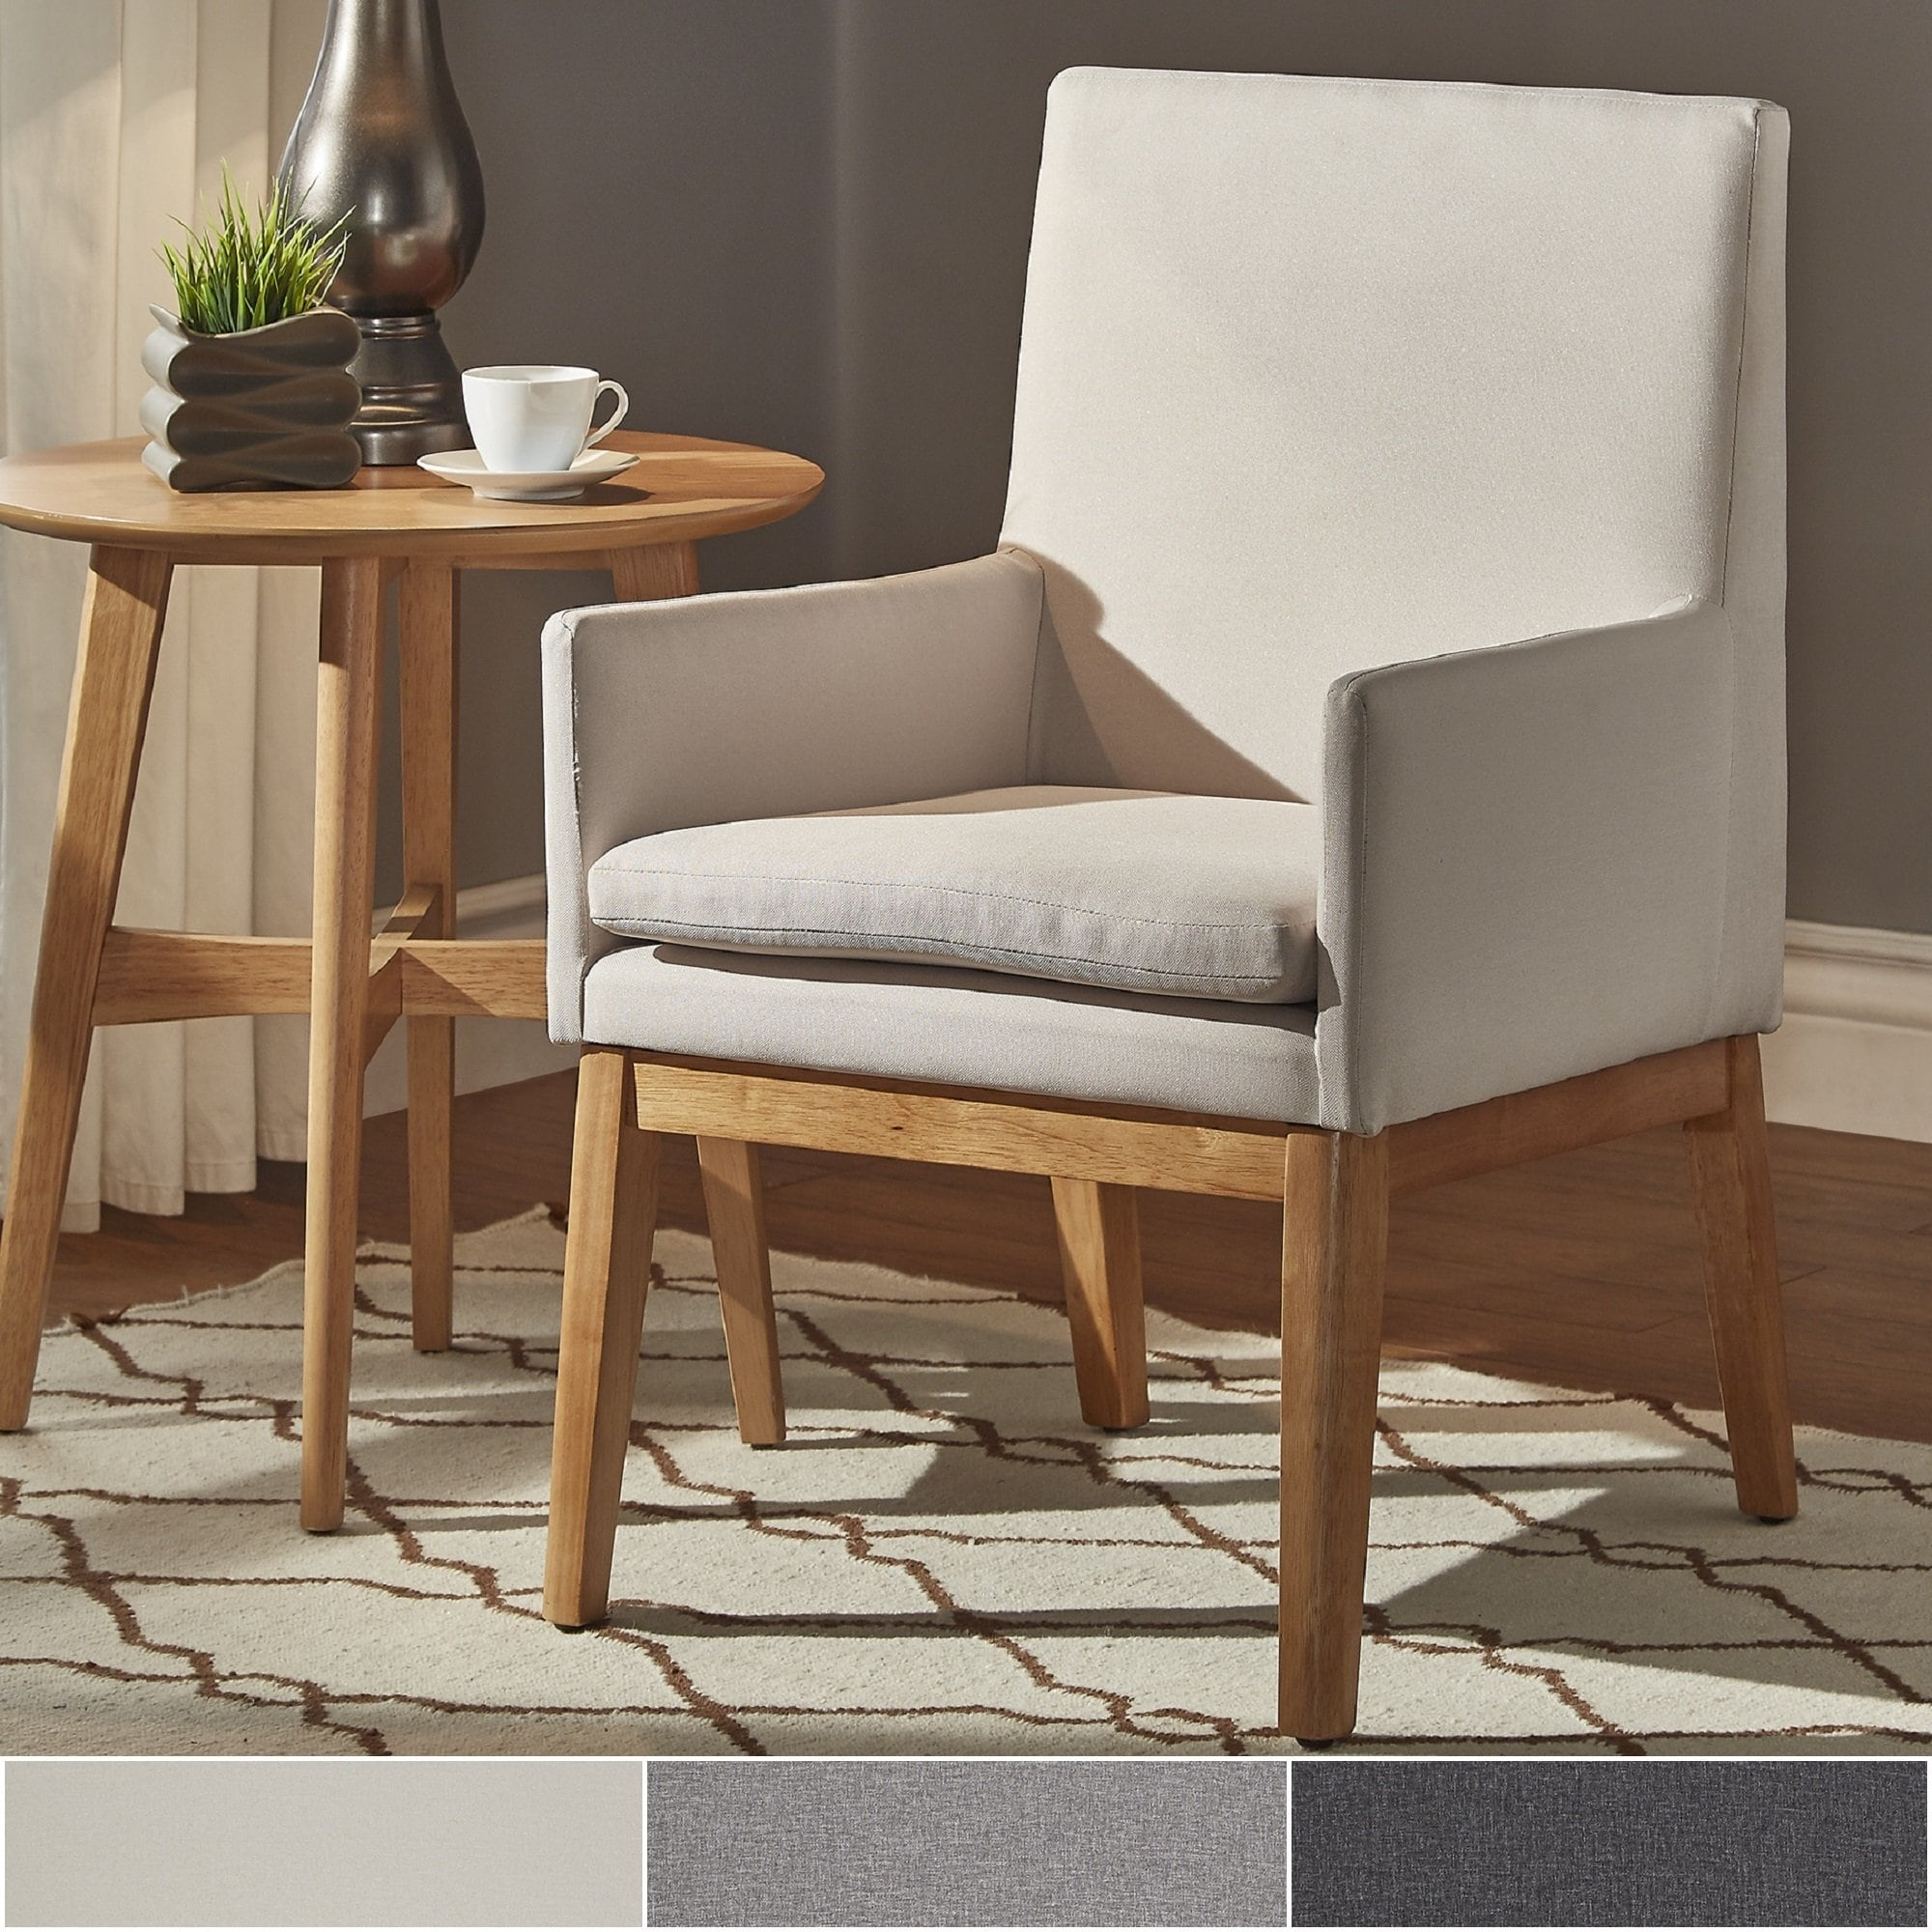 parker mid century light oak accent chairs set inspire modern tables free shipping today concrete patio table round end tall metal coffee design ideas furniture cushions clearance